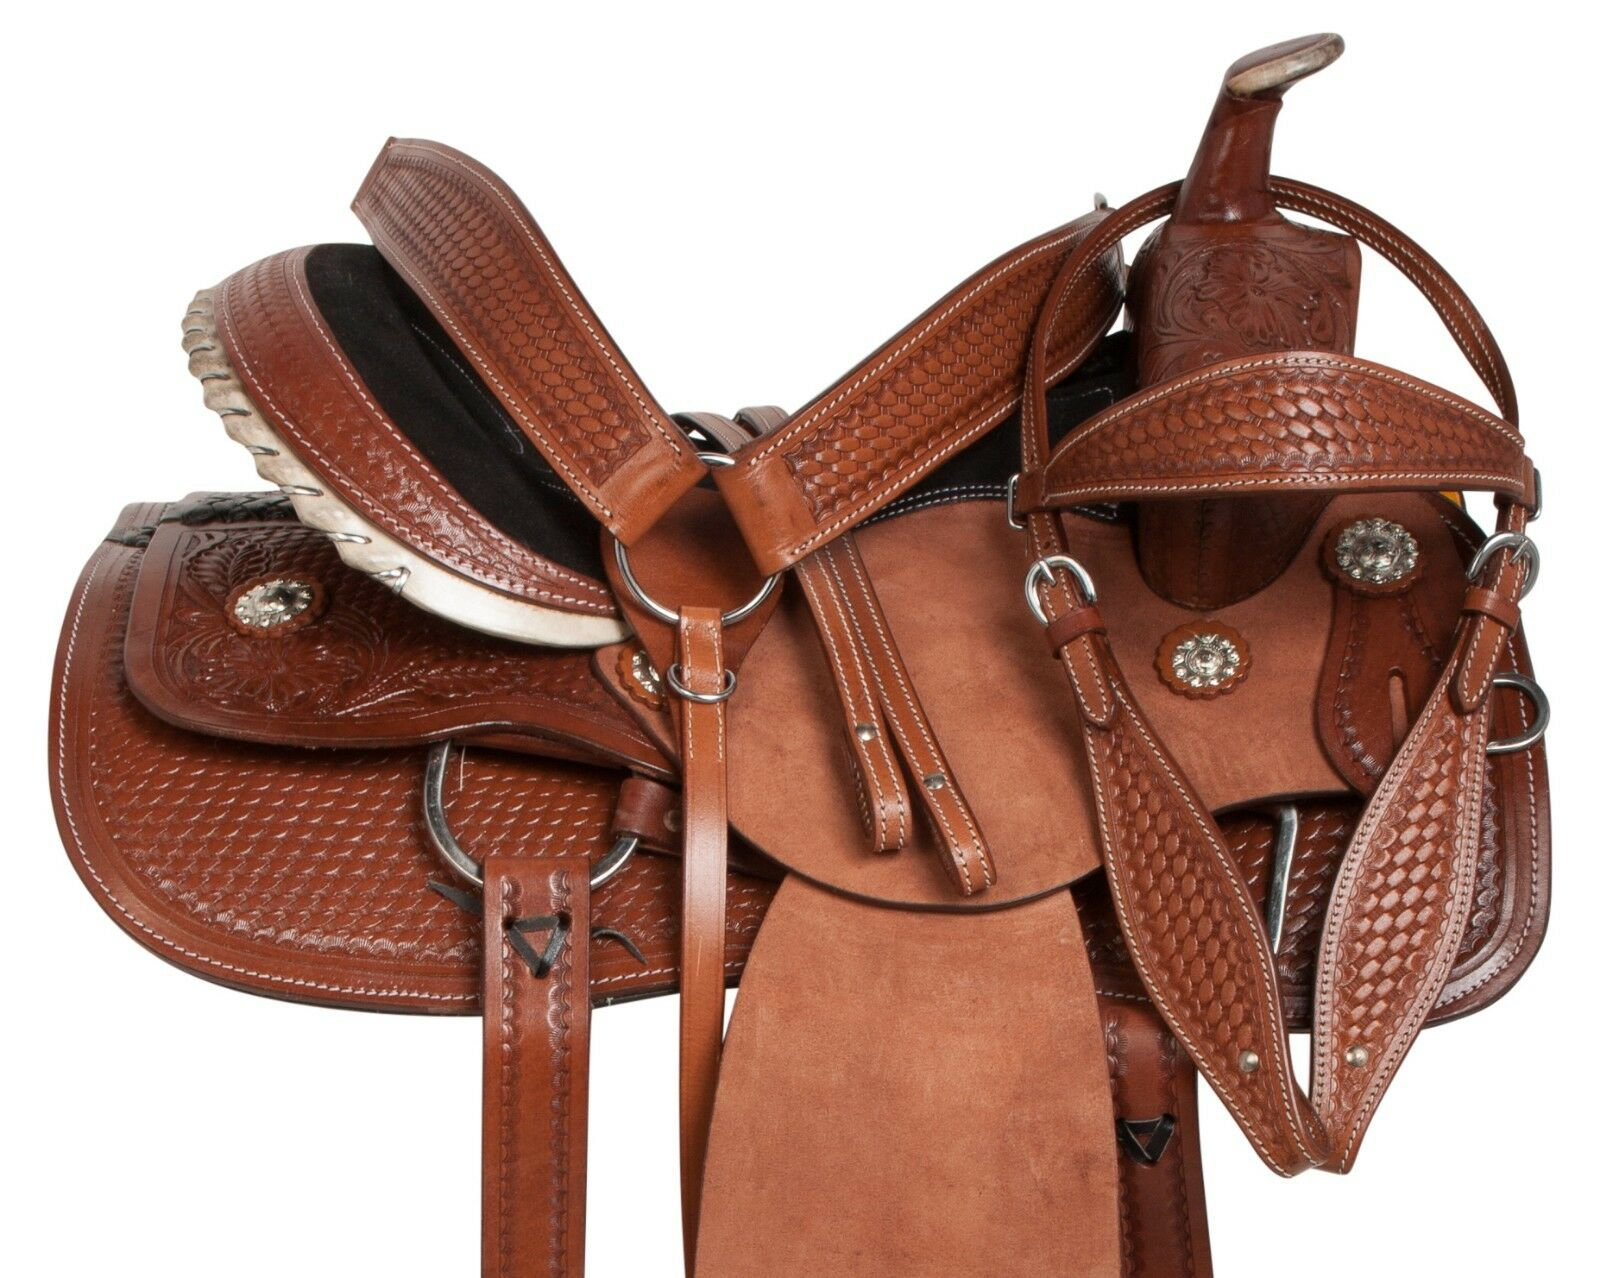 USED WESTERN ROUGH OUT LEATHER PLEASURE TRAIL ROPER HORSE SADDLE 15 16